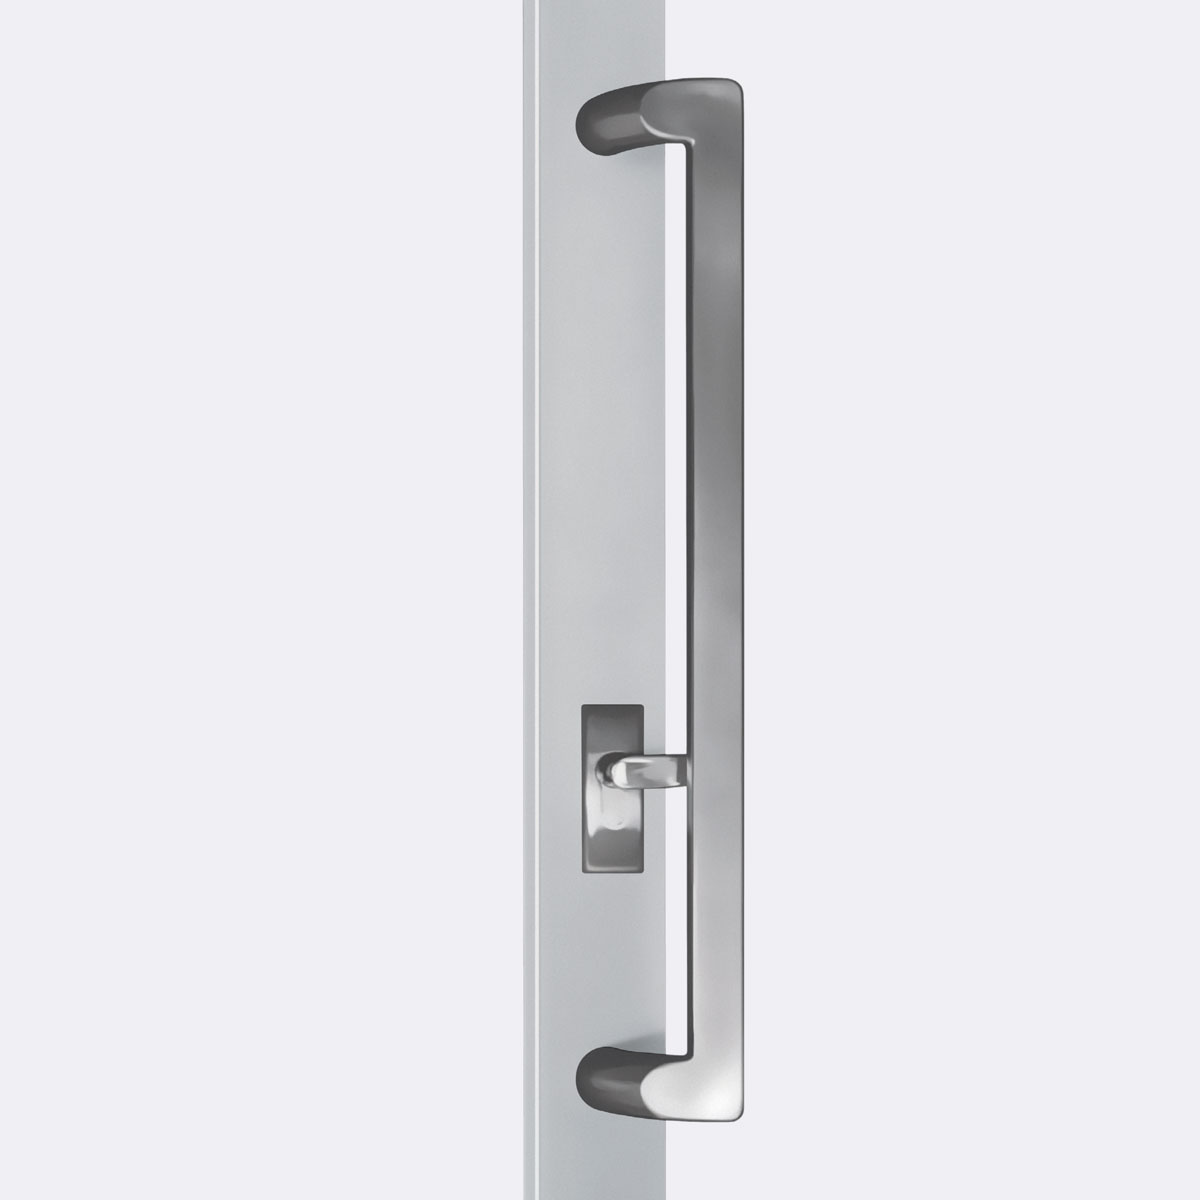 Square-form handle C